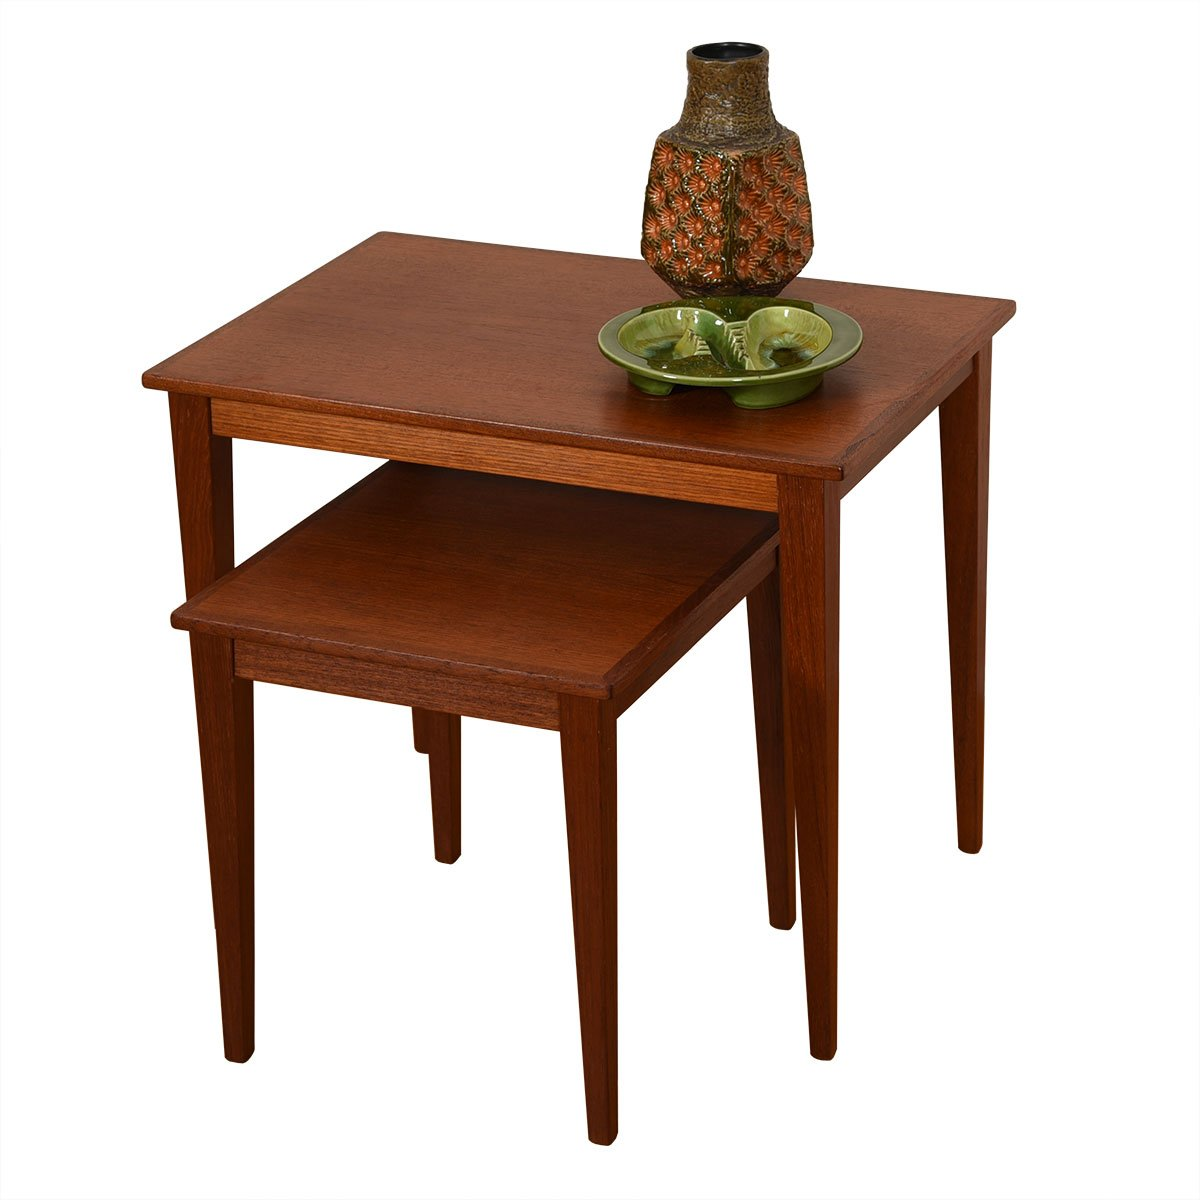 Set of 2 Danish Modern Teak Nesting Tables